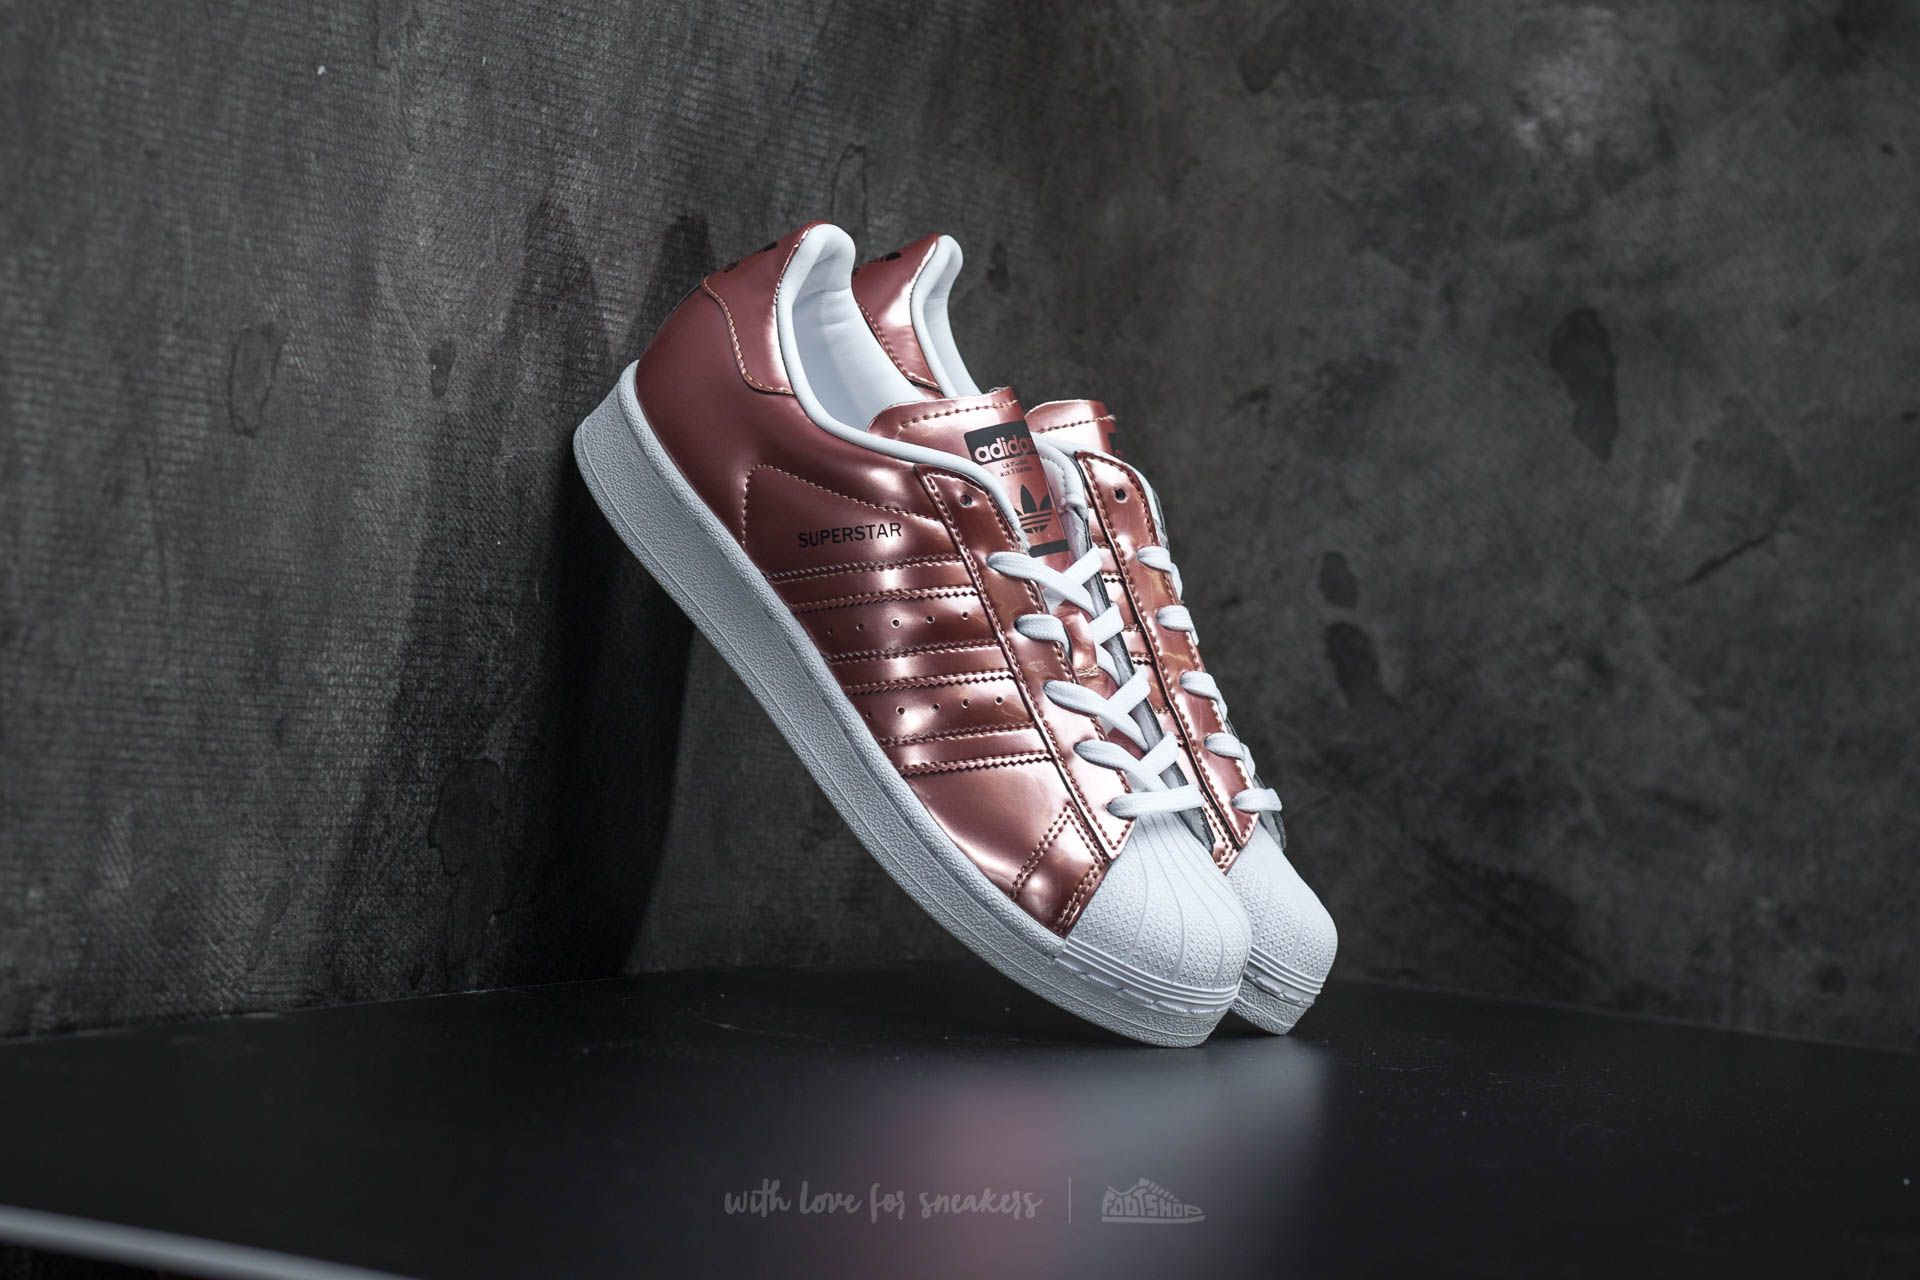 Adidas W Superstar Copper White Footwear Metallic rWxoCdQeB